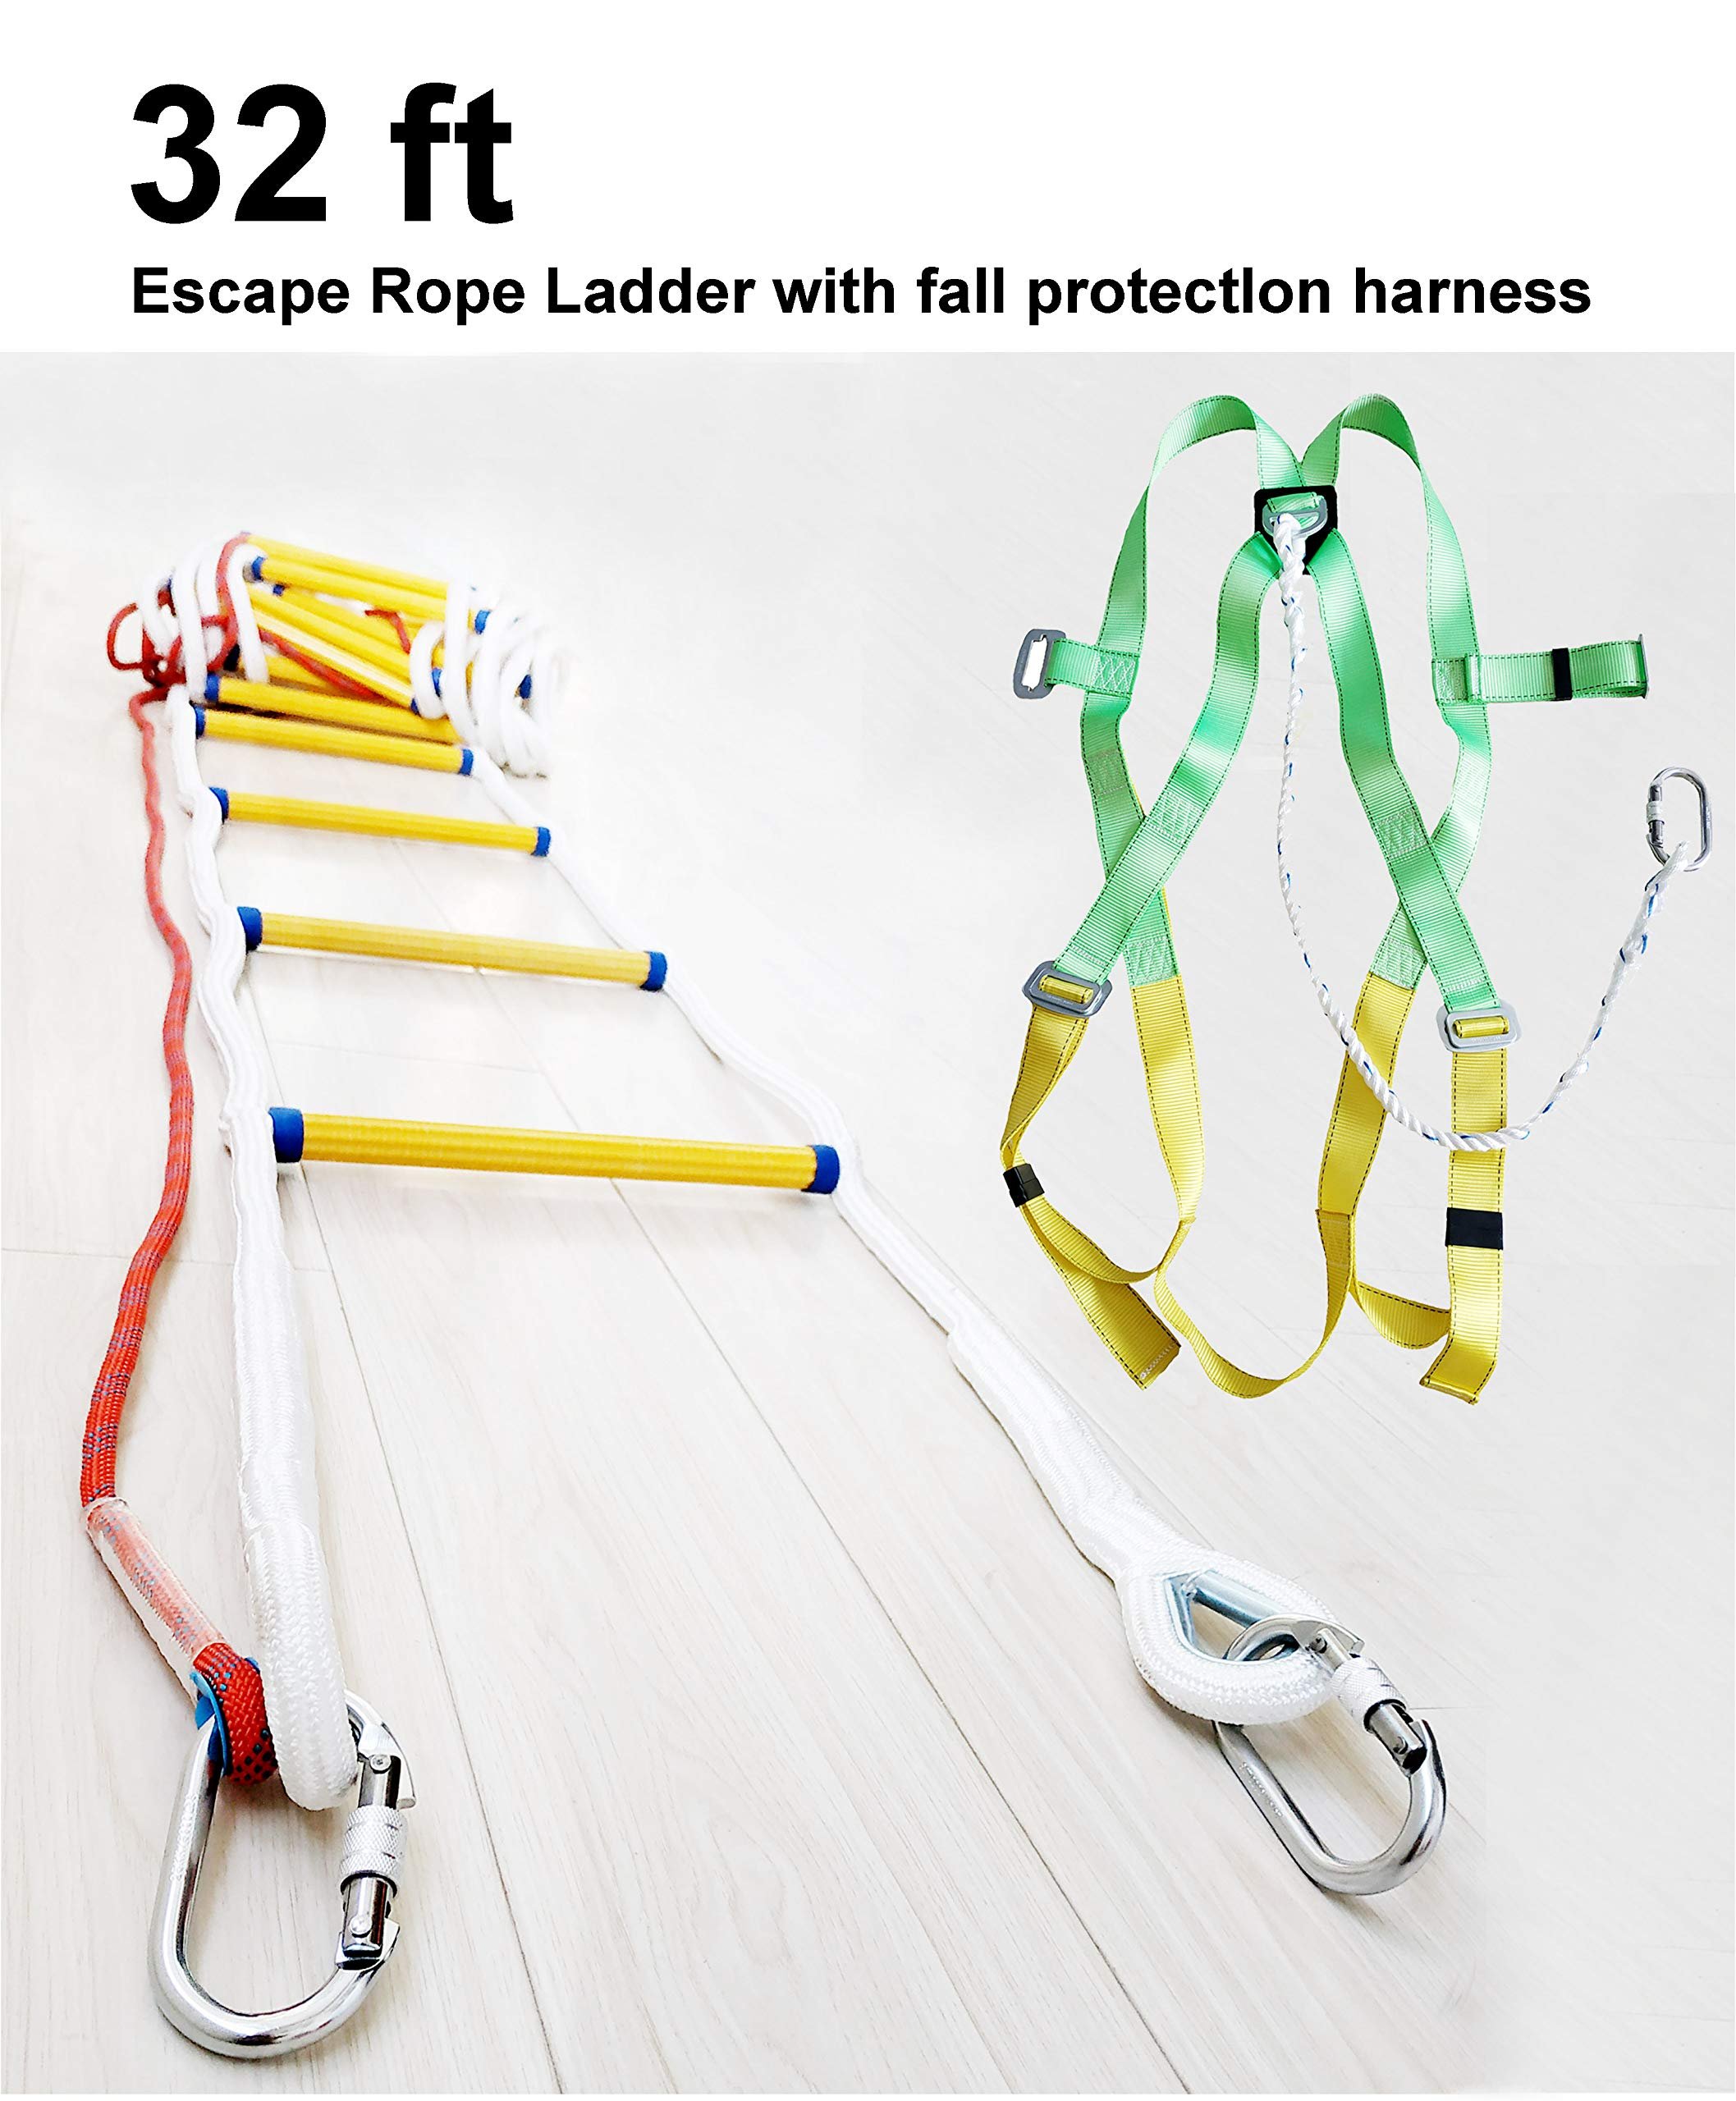 Emergency Escape Rope Ladder Kit 3-4 Story Homes 32 ft Flame Resistant Fire Safety Ladders with Fall Protection Harness with Safety Cord - Fast Deploy & Simple to Use -Reusable